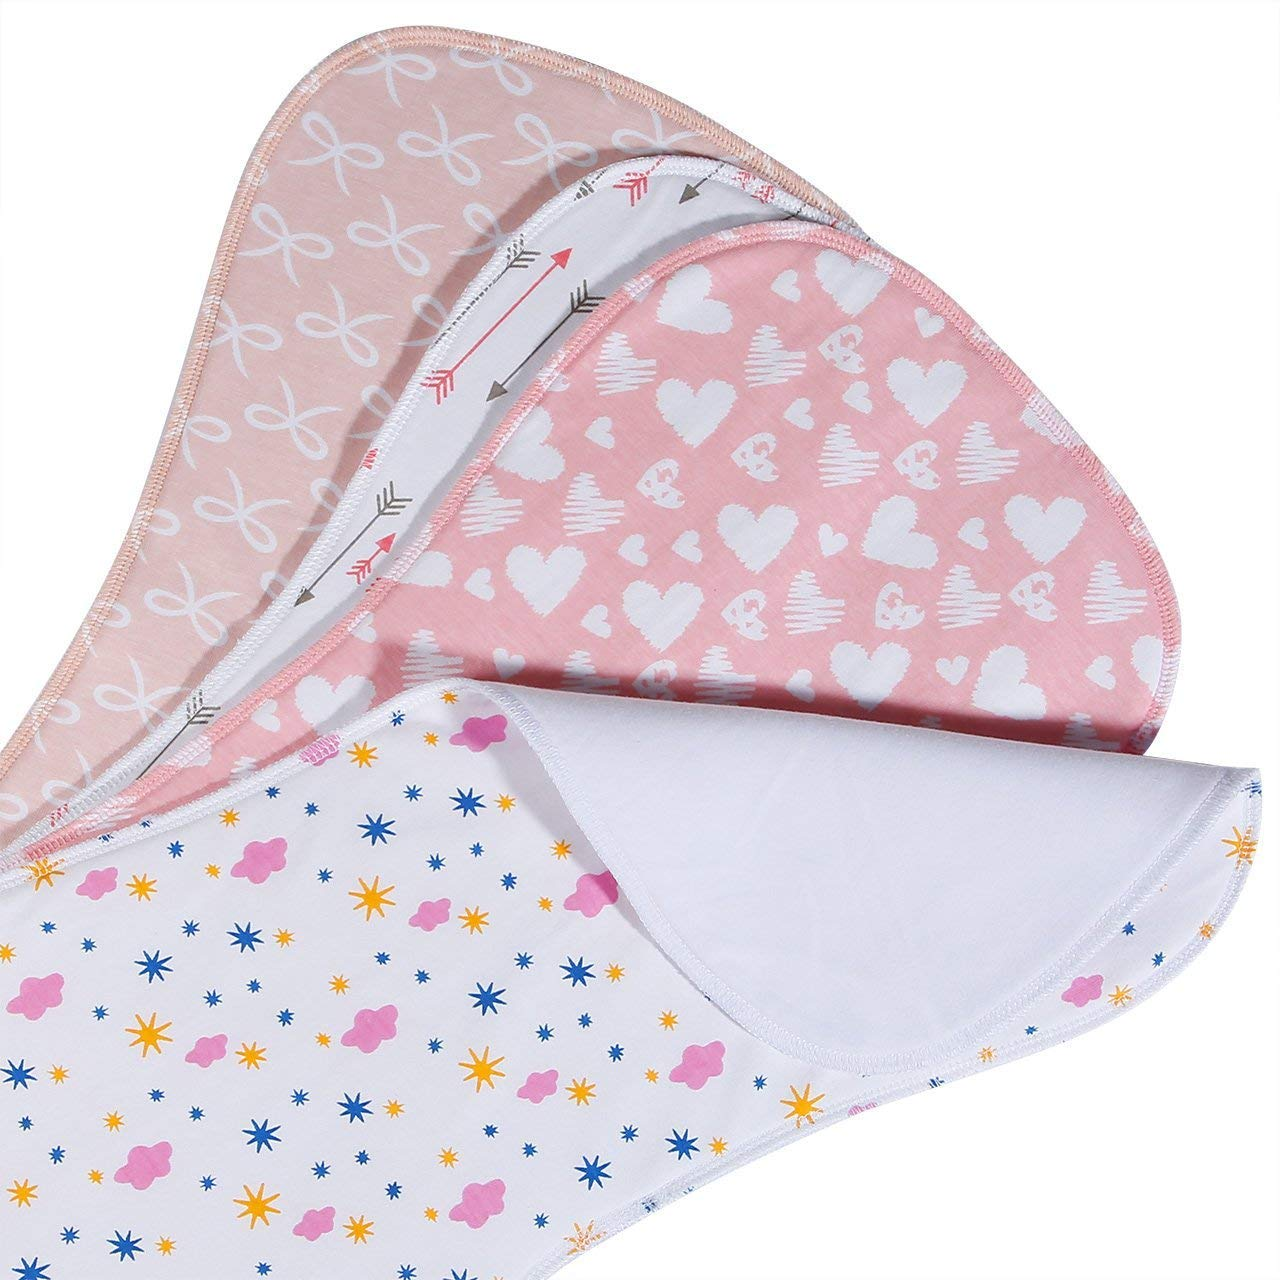 Baby Burp Cloths 3 Layer Burp Bibs Curved Soft and Absorbent for Girl, 4 Pack Burping Towels by Yoofoss